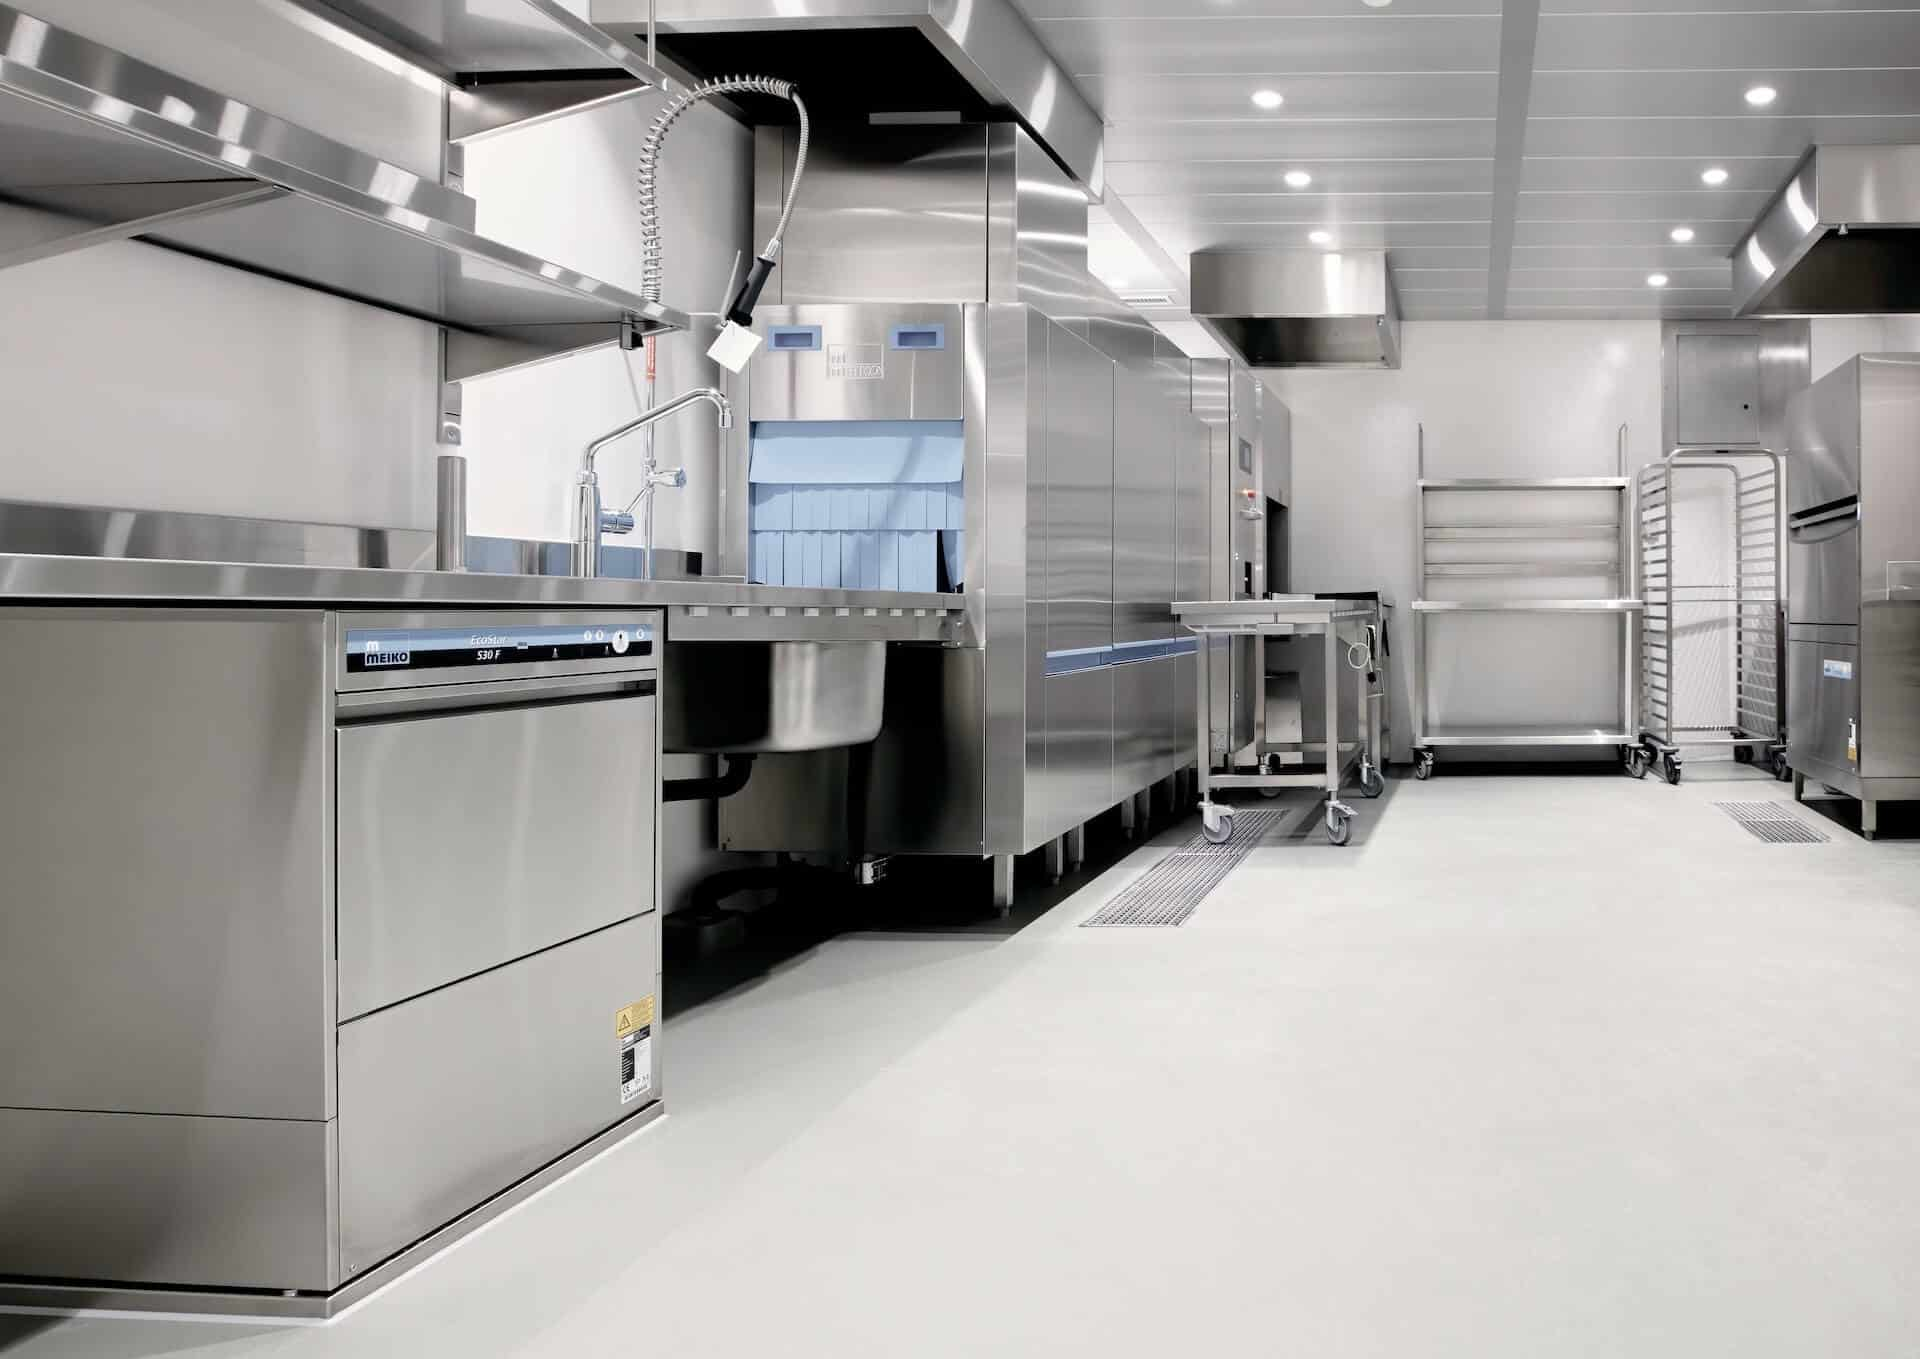 Professional kitchen cleaning products